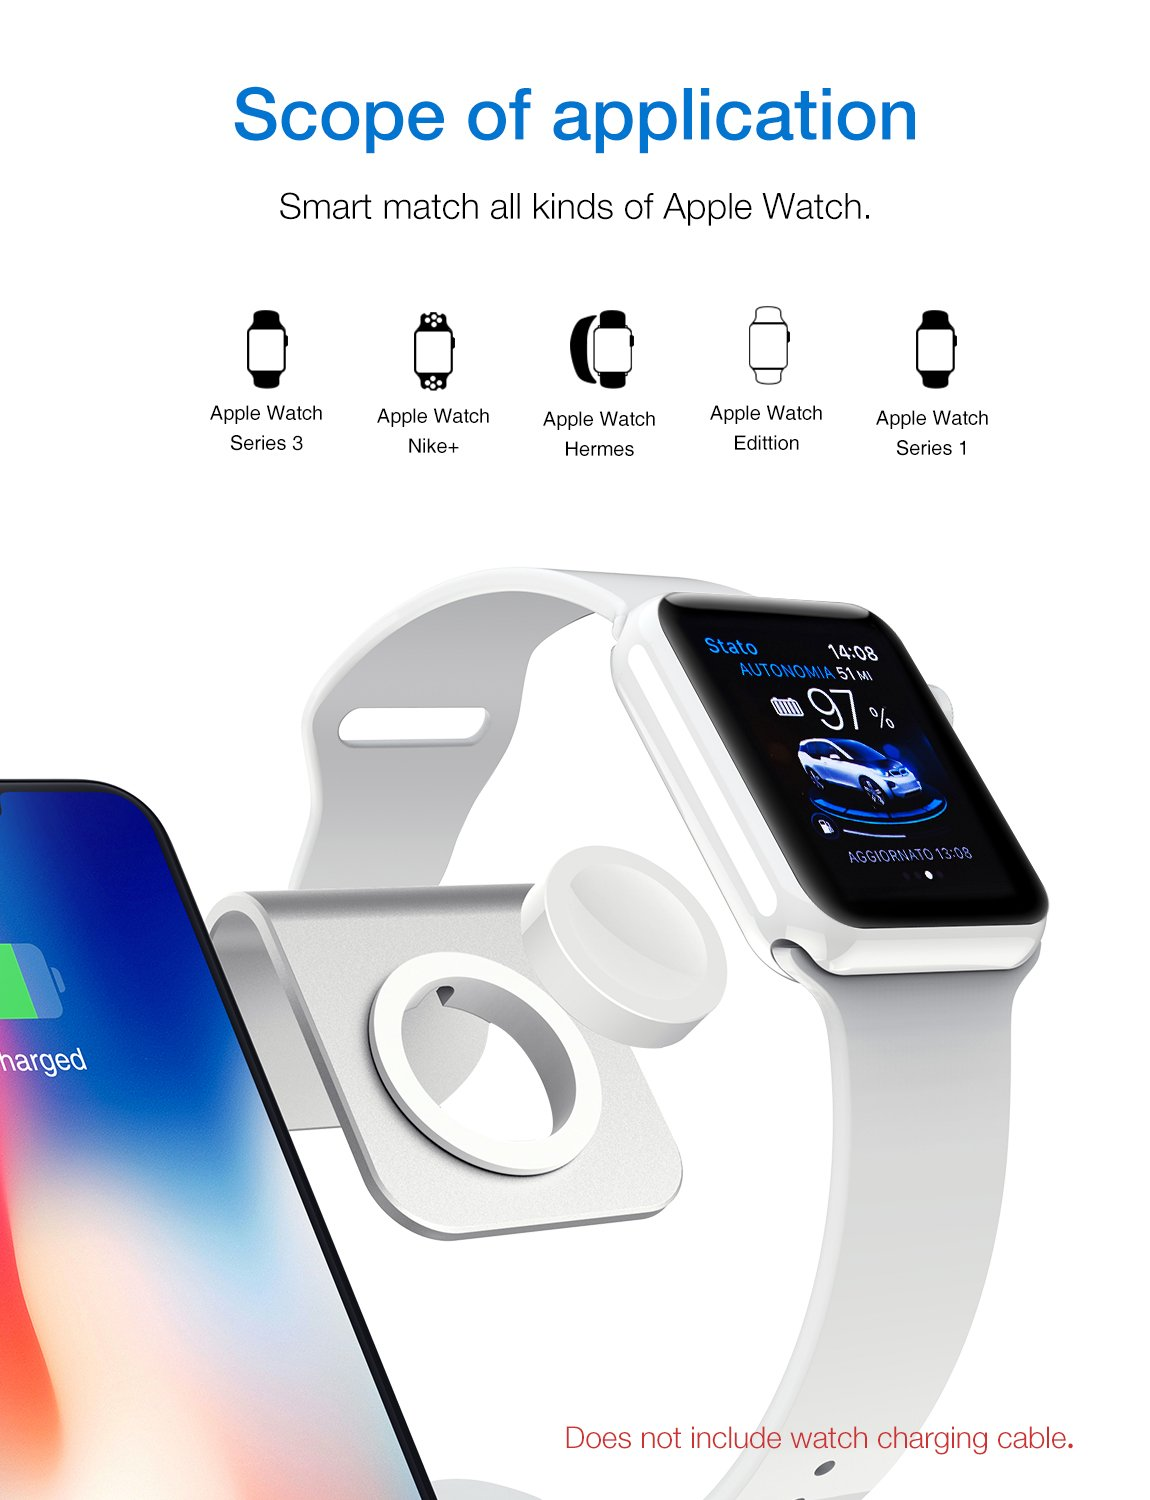 Bestand H05-Grey 3 in 1 Aluminum Apple iWatch Stand, Airpods Charging Station, Qi Fast Wireless Charger Dock for iPhone X/8/7/6s Plus Samsung S8 and other Qi-Enabled Devices, Grey by Bestand (Image #4)